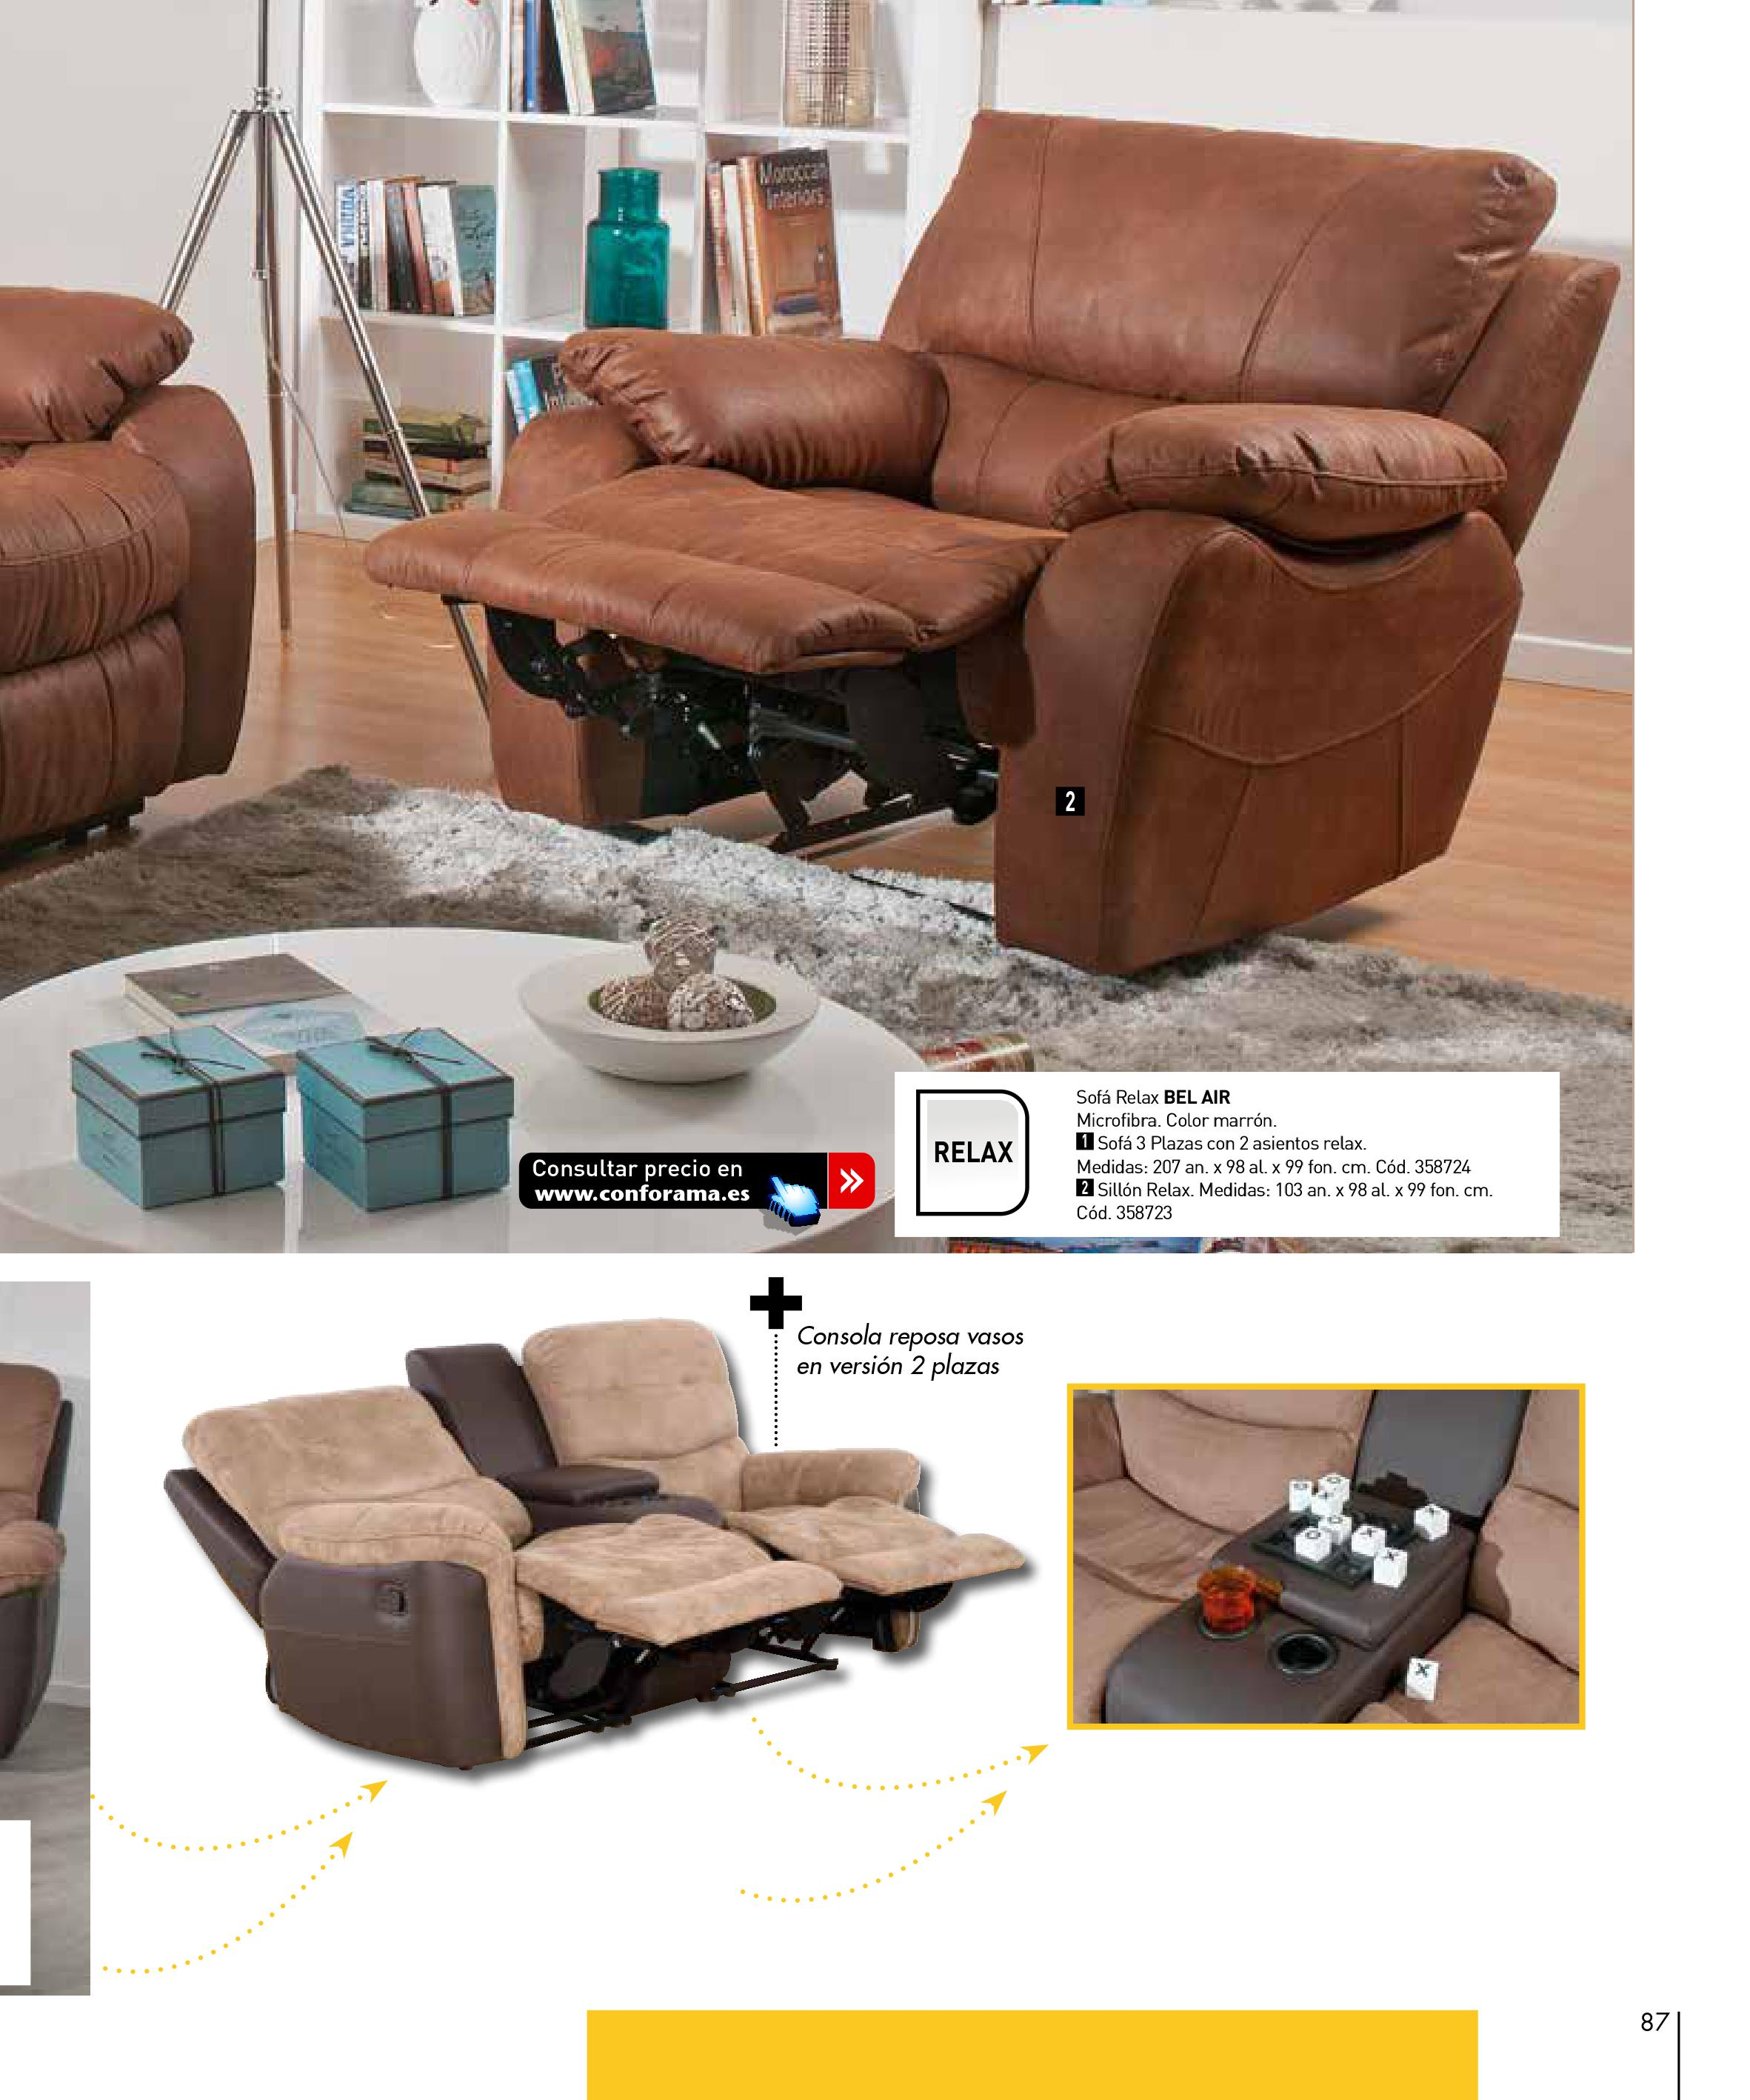 Sofas conforama 201587 for Sofas conforama catalogo